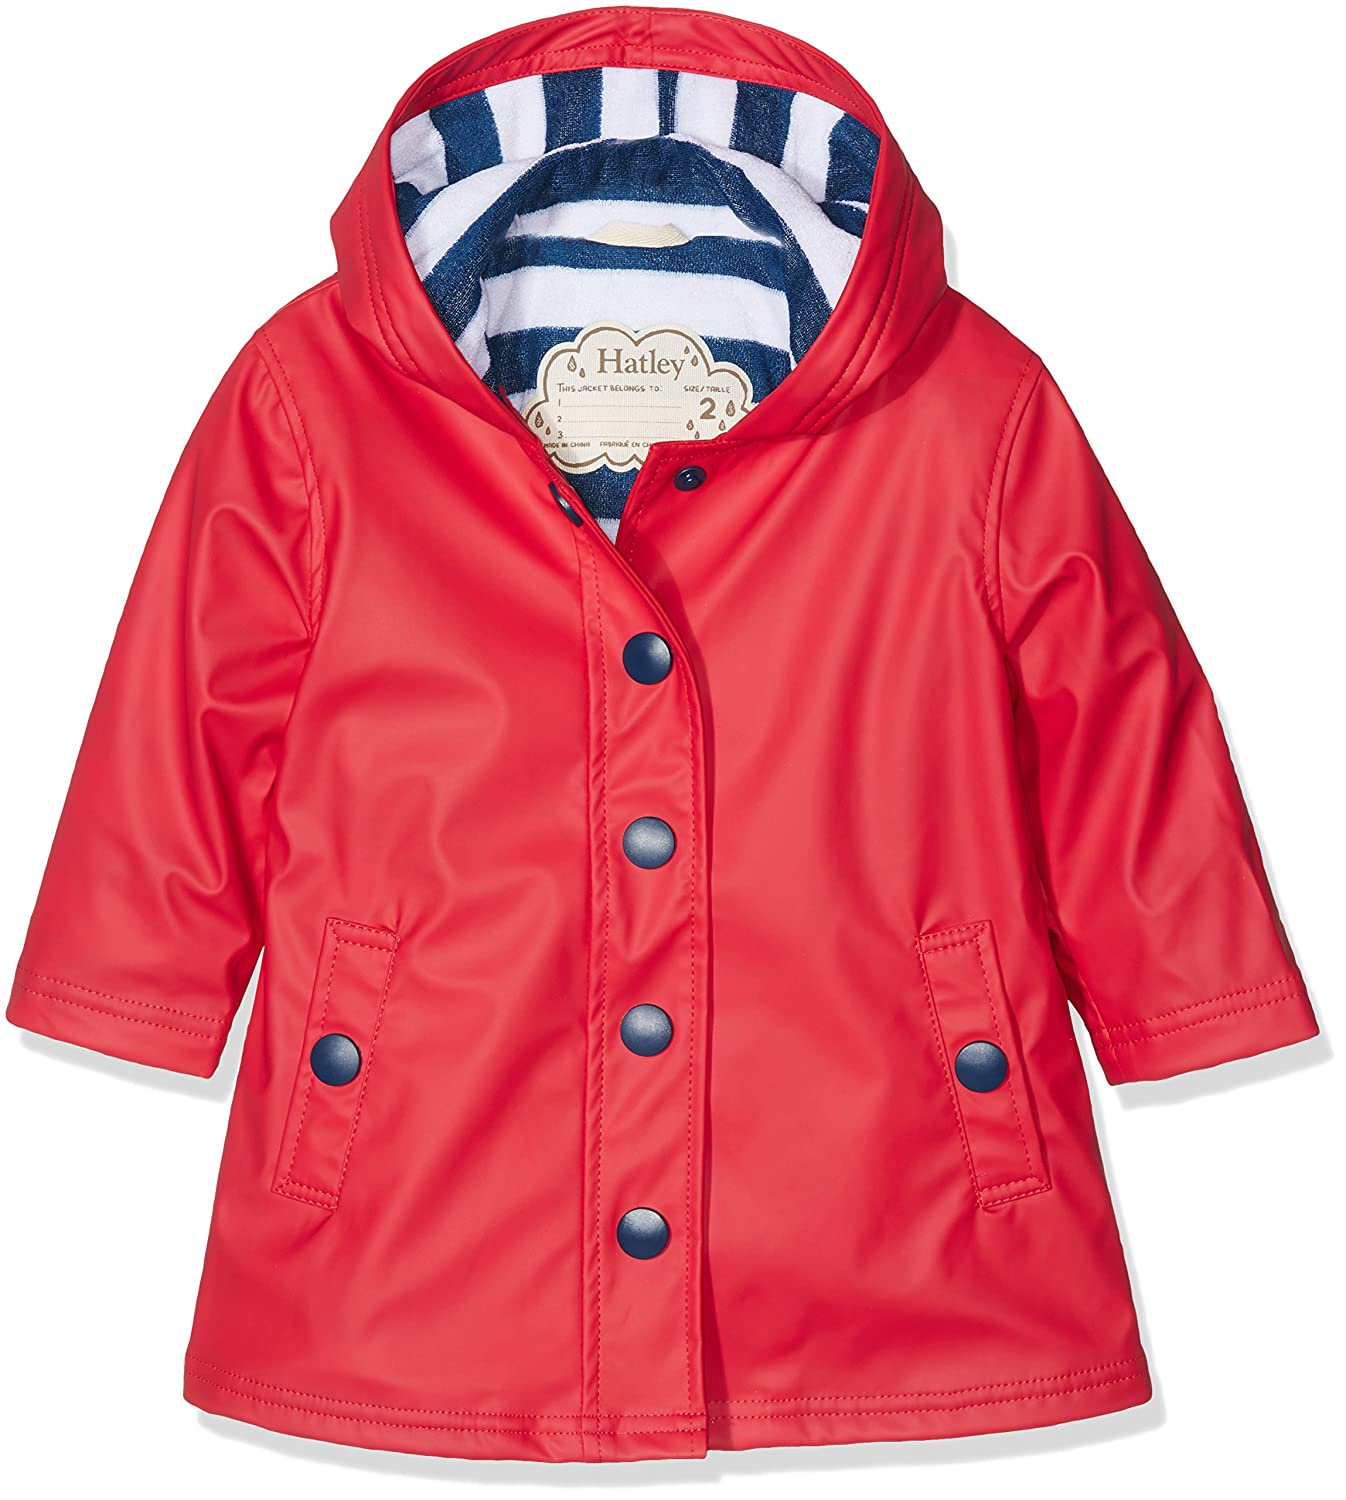 Hatley Girls Splash Jackets